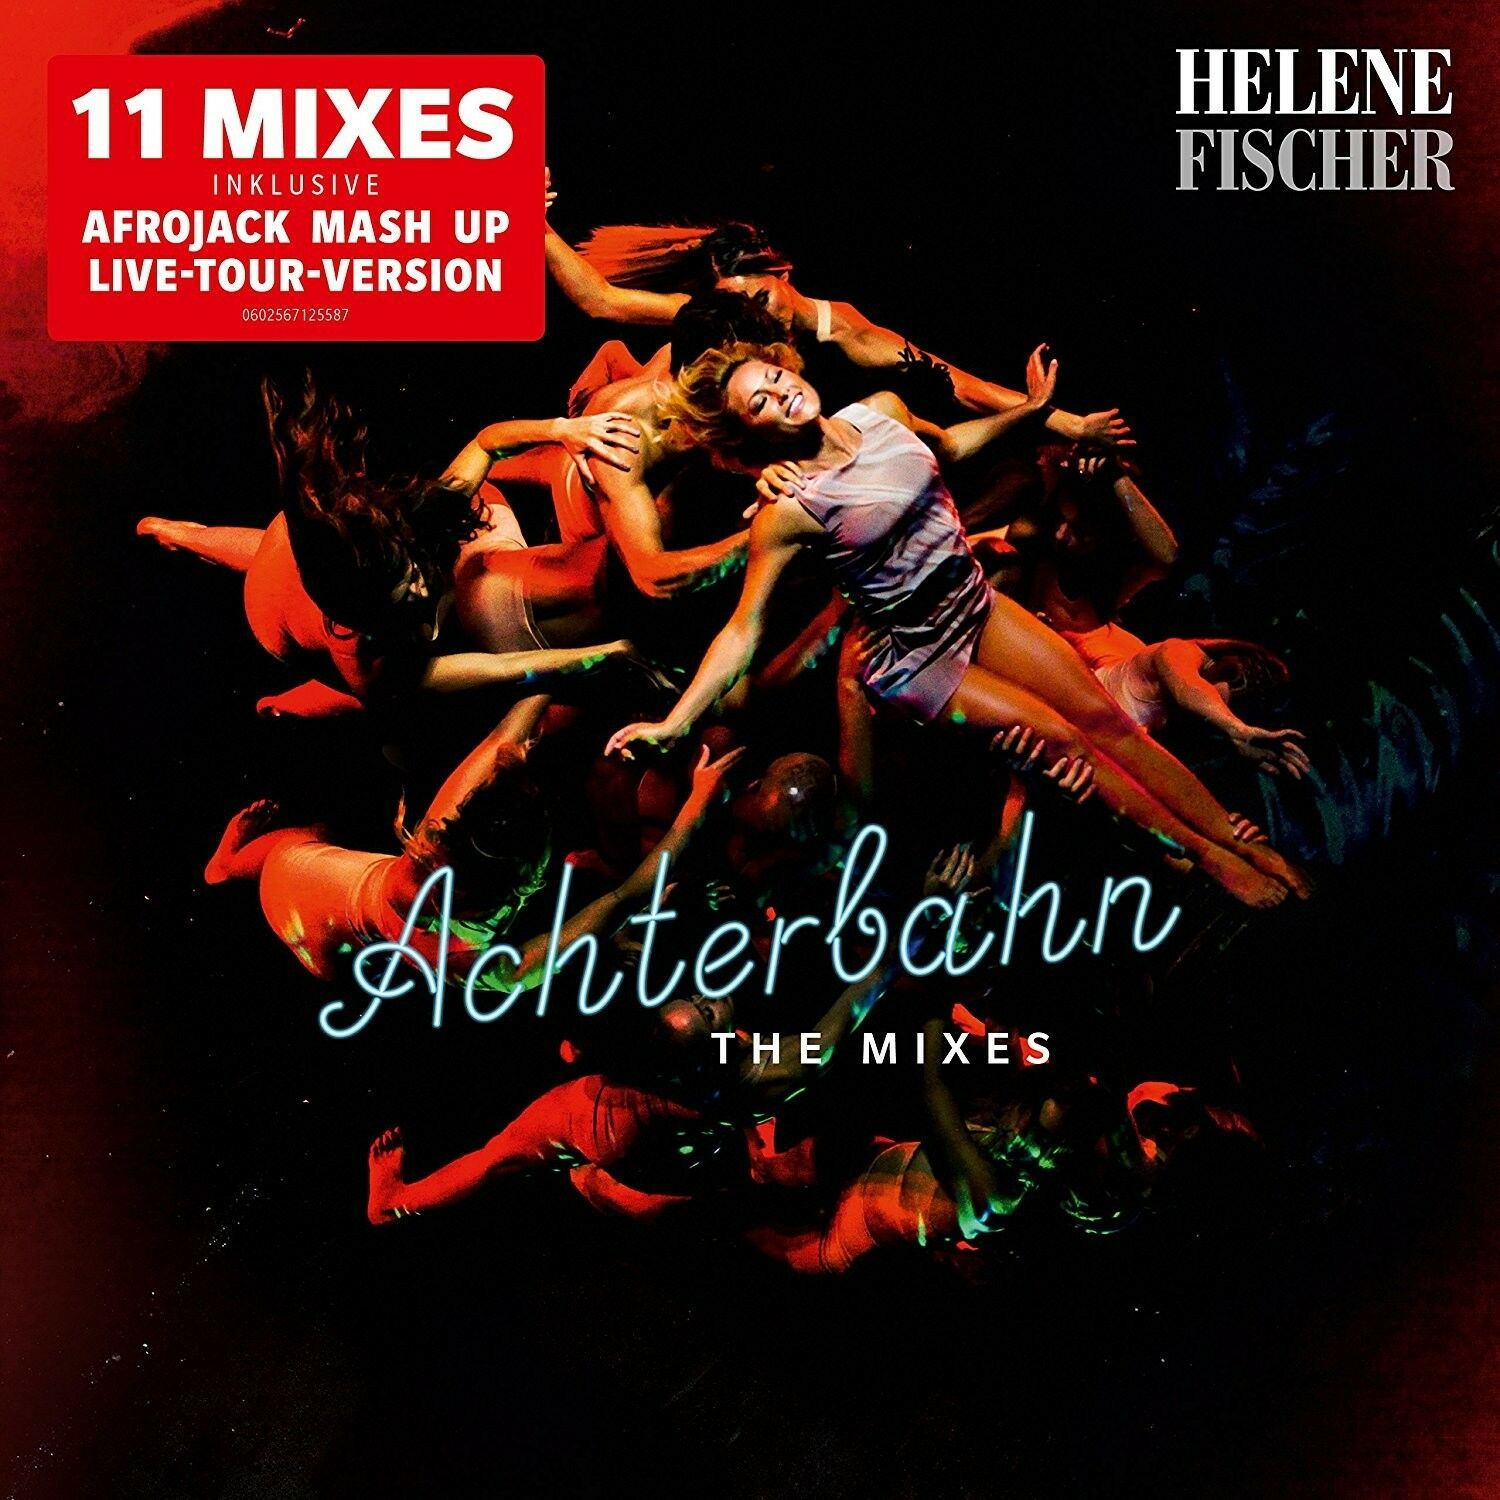 HELENE FISCHER - Achterbahn-The Mixes (2017) Cd Single Neu - EUR 9 ...